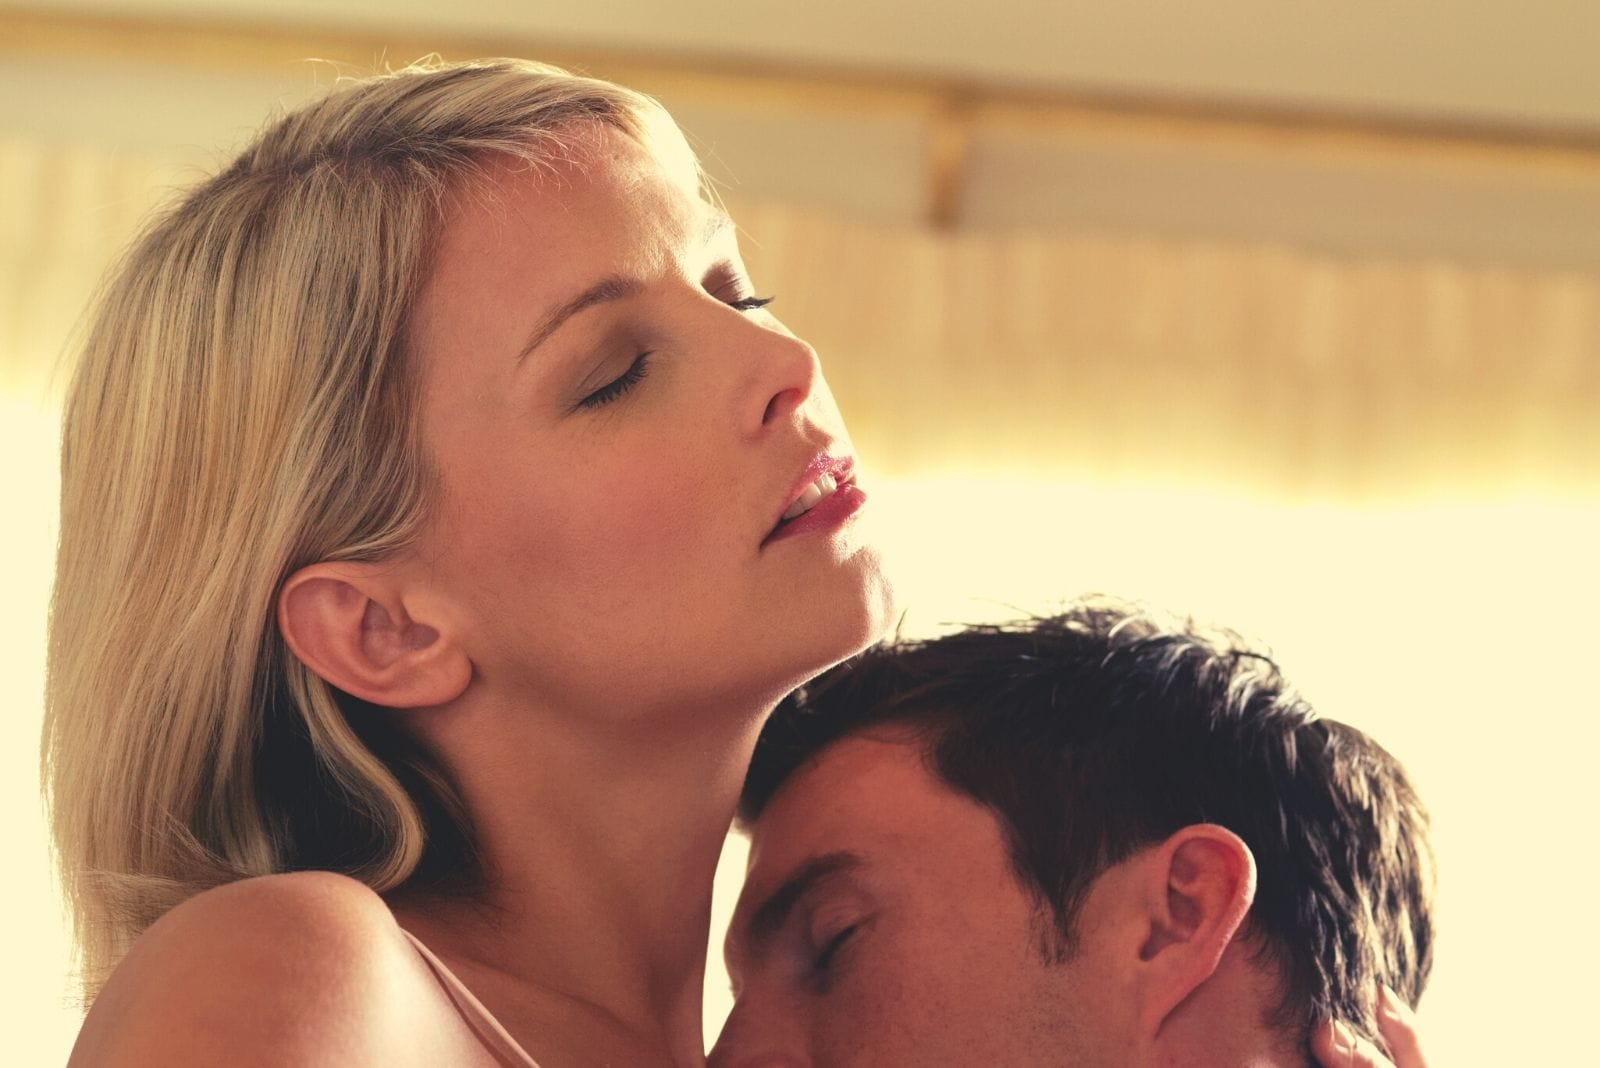 a young couple kiss passionately inside the room